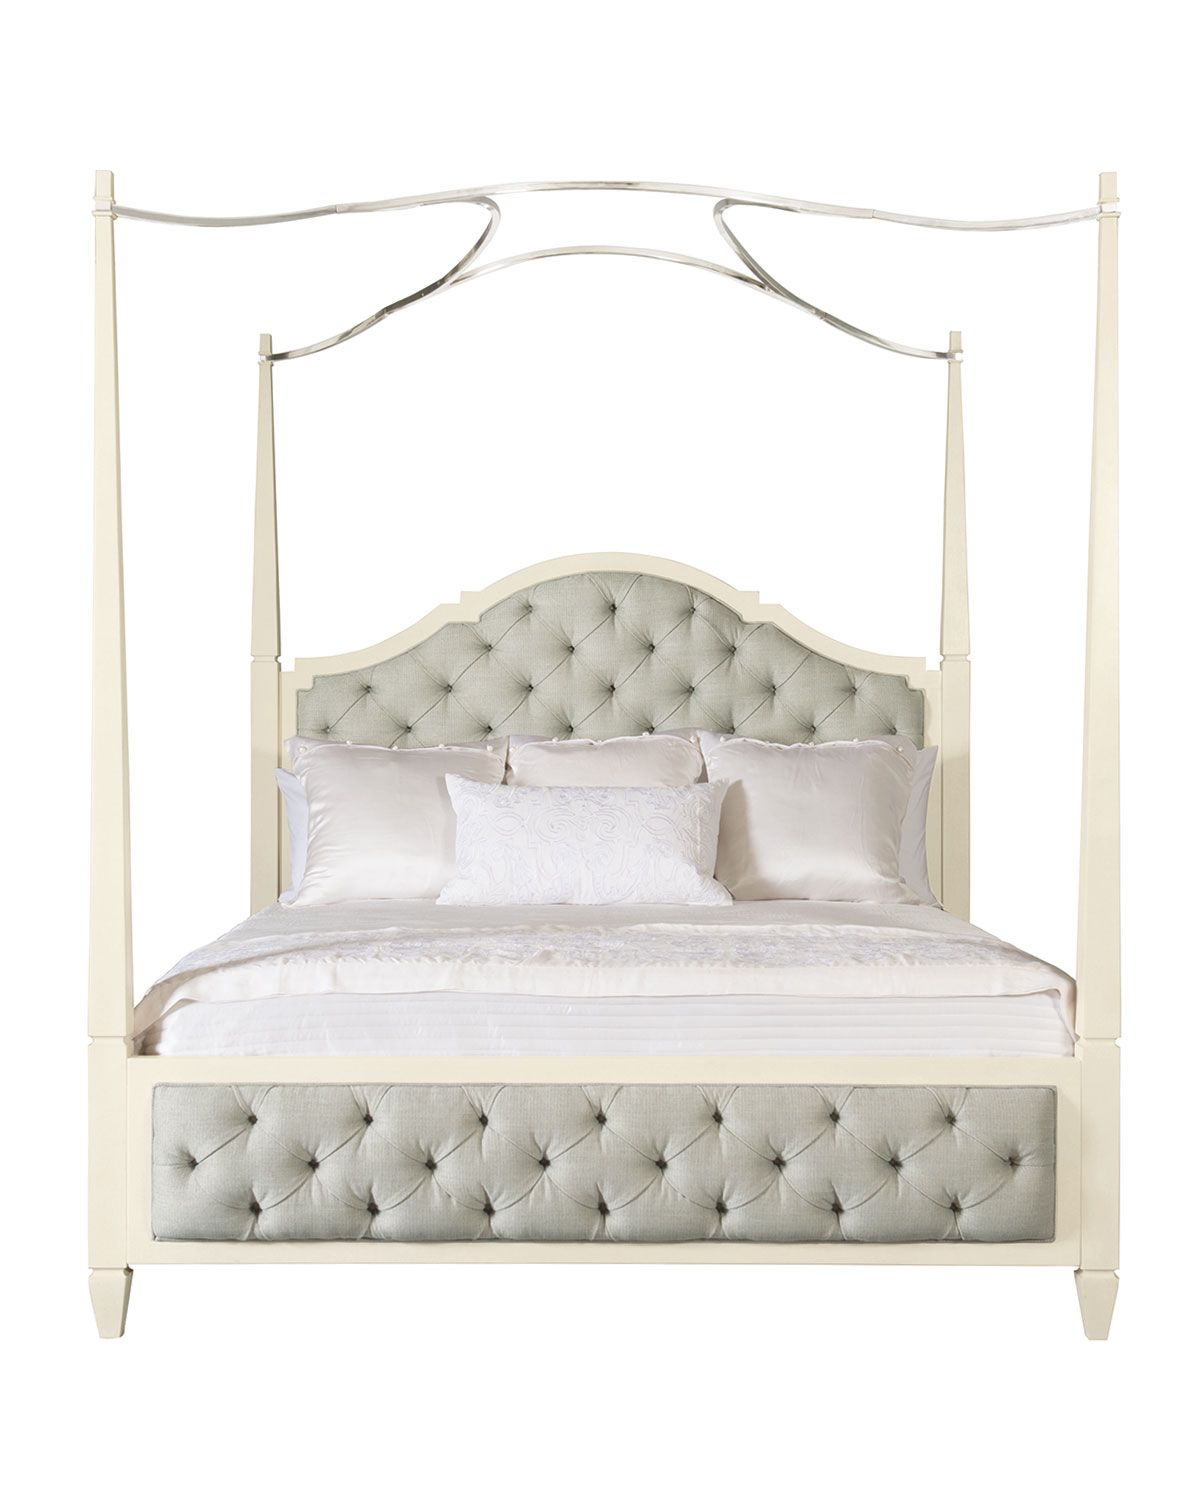 Natalie King Tufted Canopy Bed in Beds Pinterest Bed